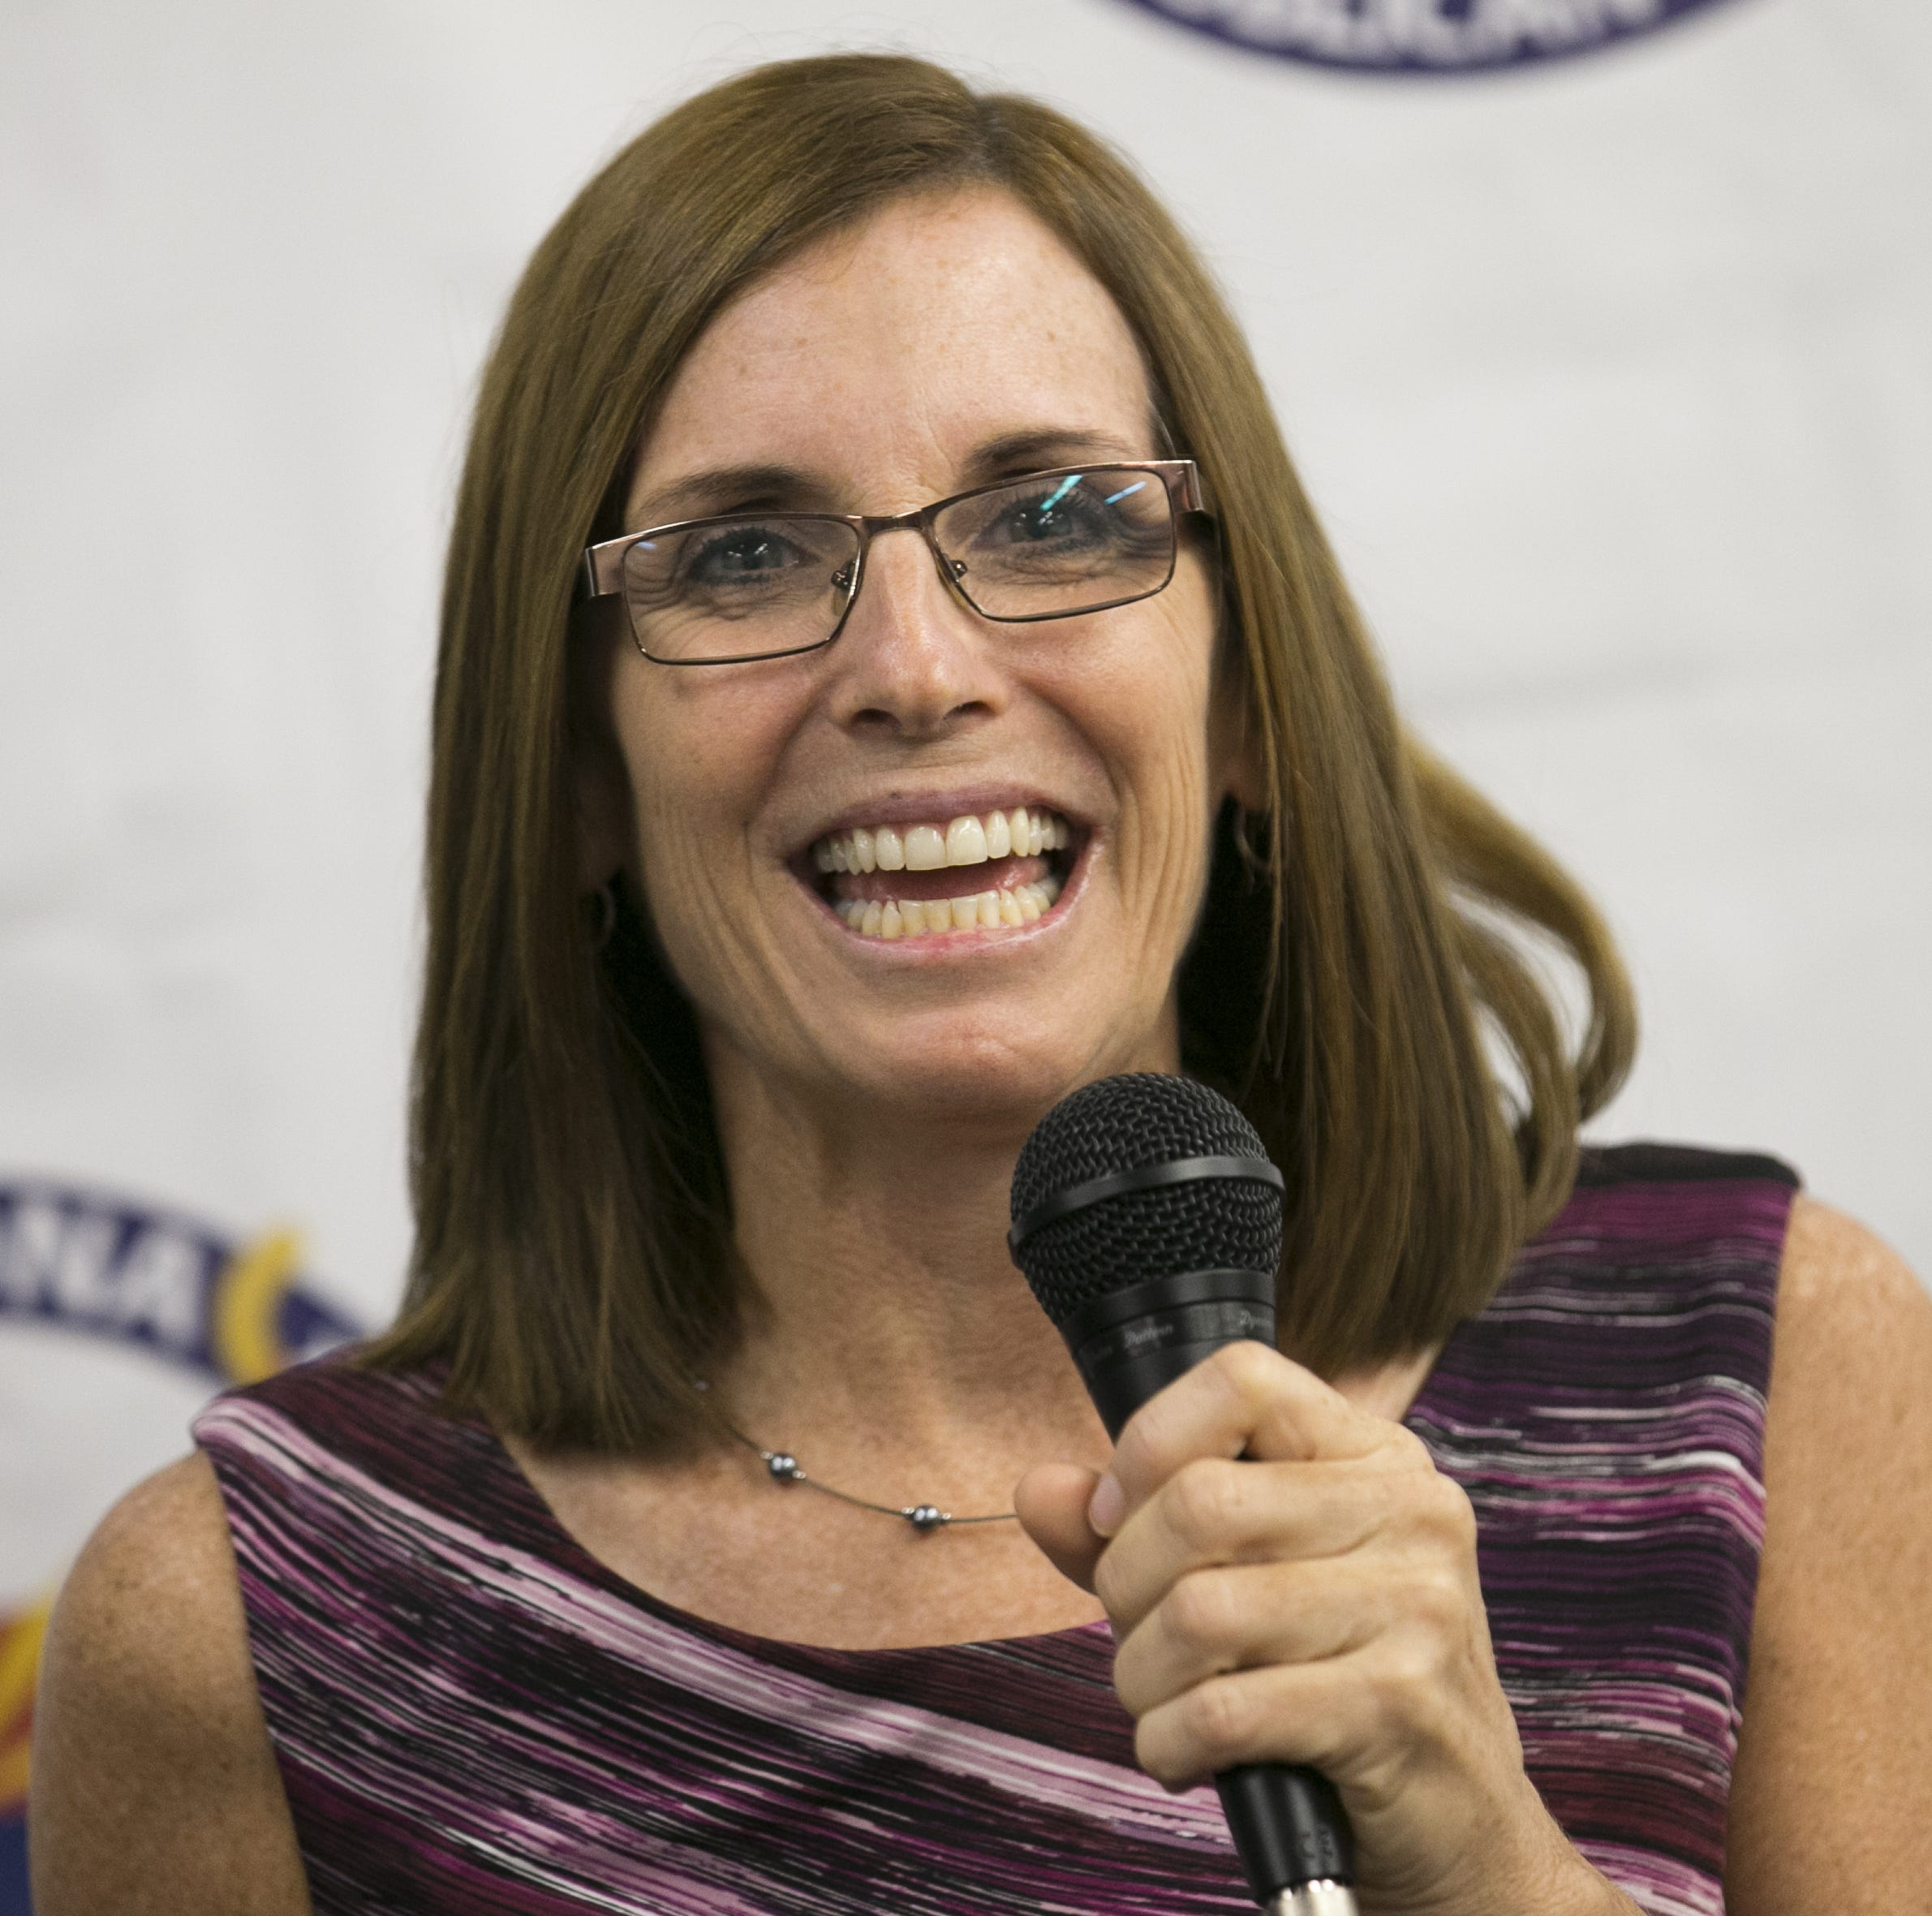 Appoint Martha McSally to John McCain's seat? No freakin' way